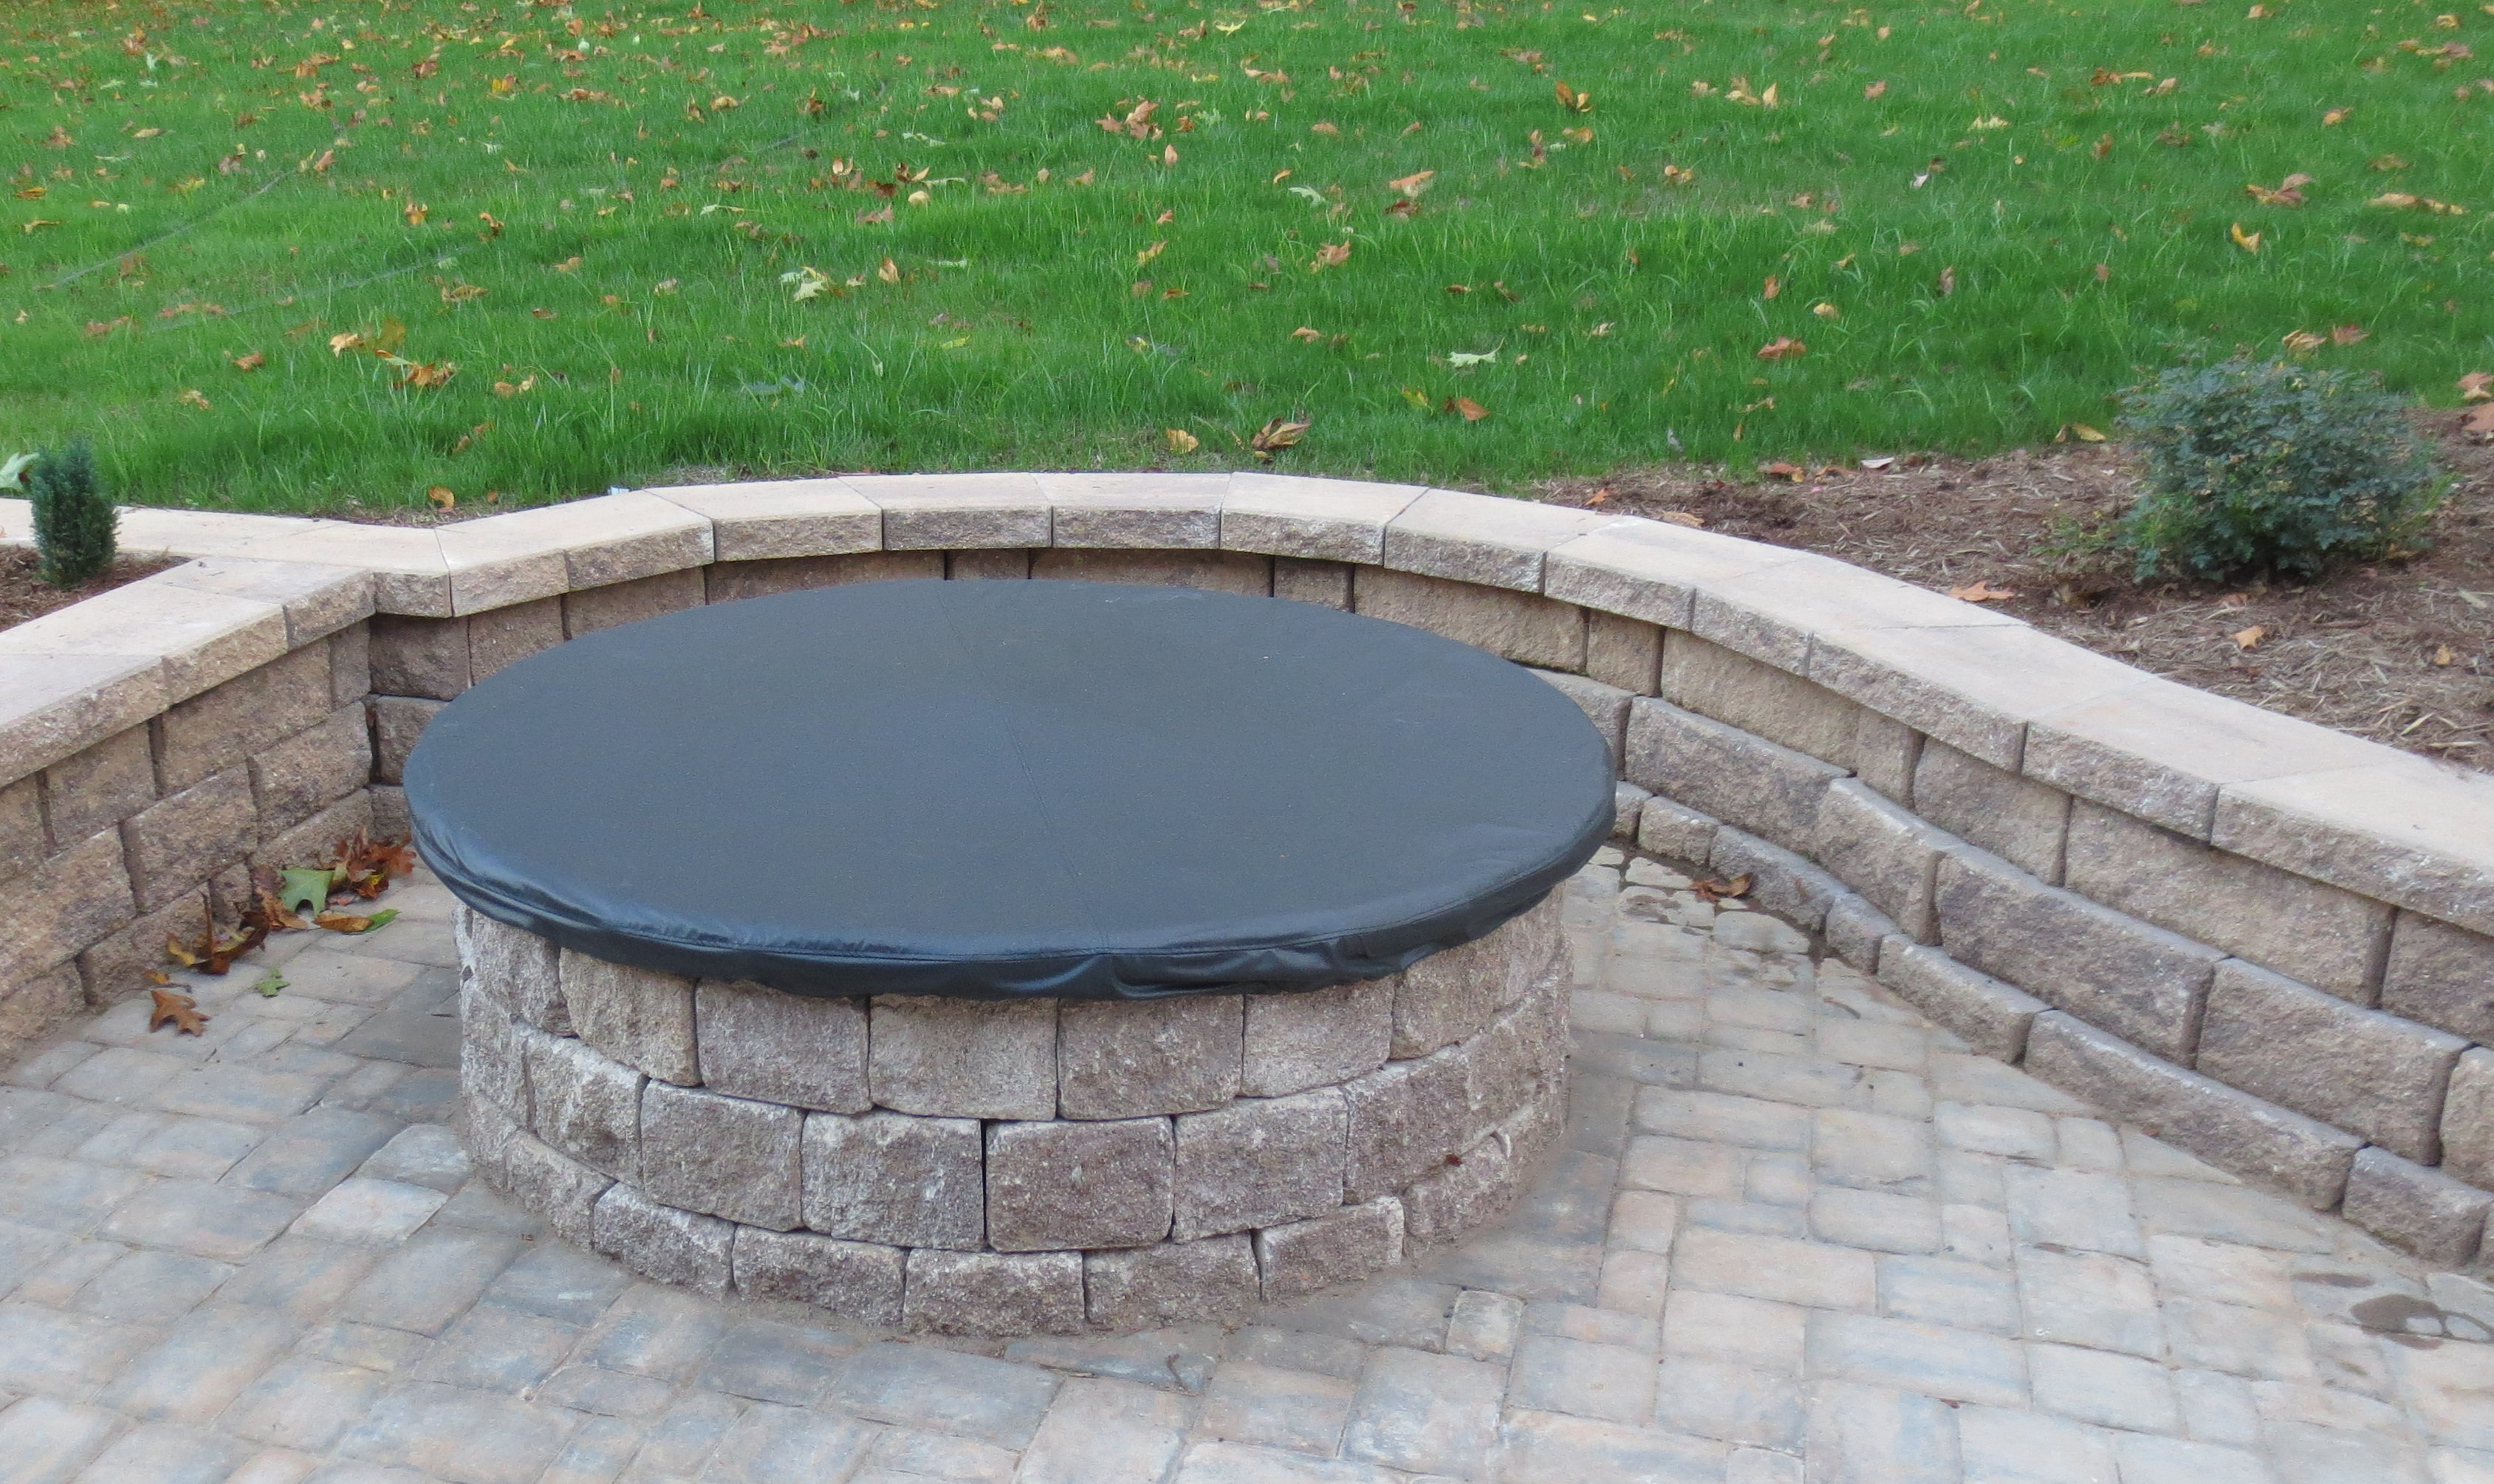 Metal Fire Pit Covers Round New Unique Round Fire Pit Cover Metal for dimensions 3377 X 2010